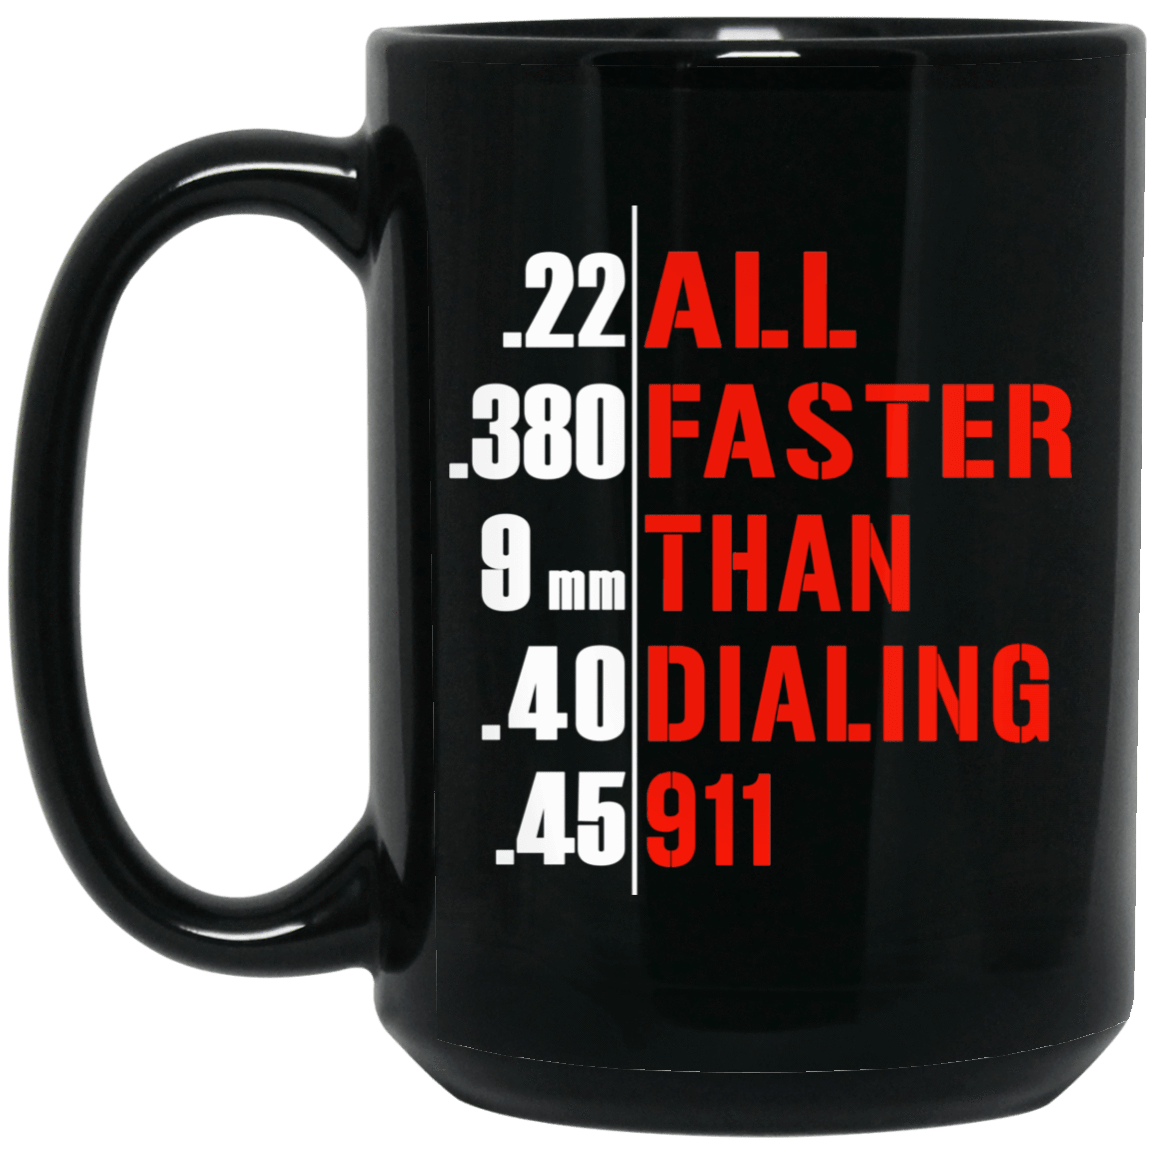 All Faster Than Dialing 911 Guns Mug 1066-10182-73180943-49311 - Tee Ript